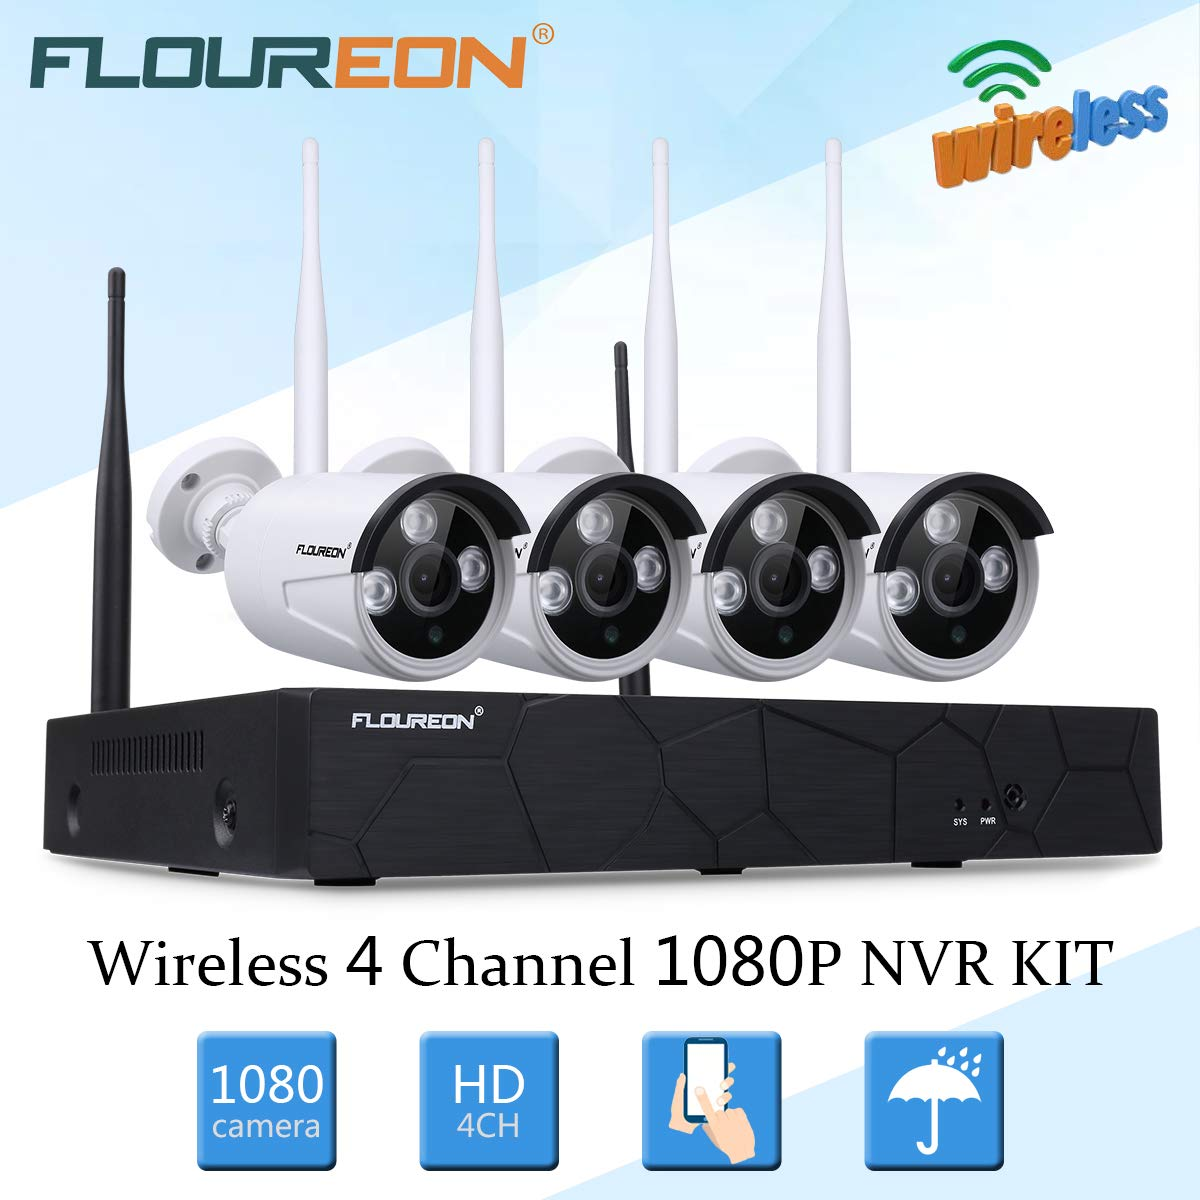 Wireless Security Cameras System, FLOUREON 4CH 1080P HD WiFi NVR and 4pcs 60FT Night Vision 2.0MP 1080P Indoor Outdoor Wireless CCTV Cameras, AUTO-Pair, Smartphone Remote Access NO Hard Drive